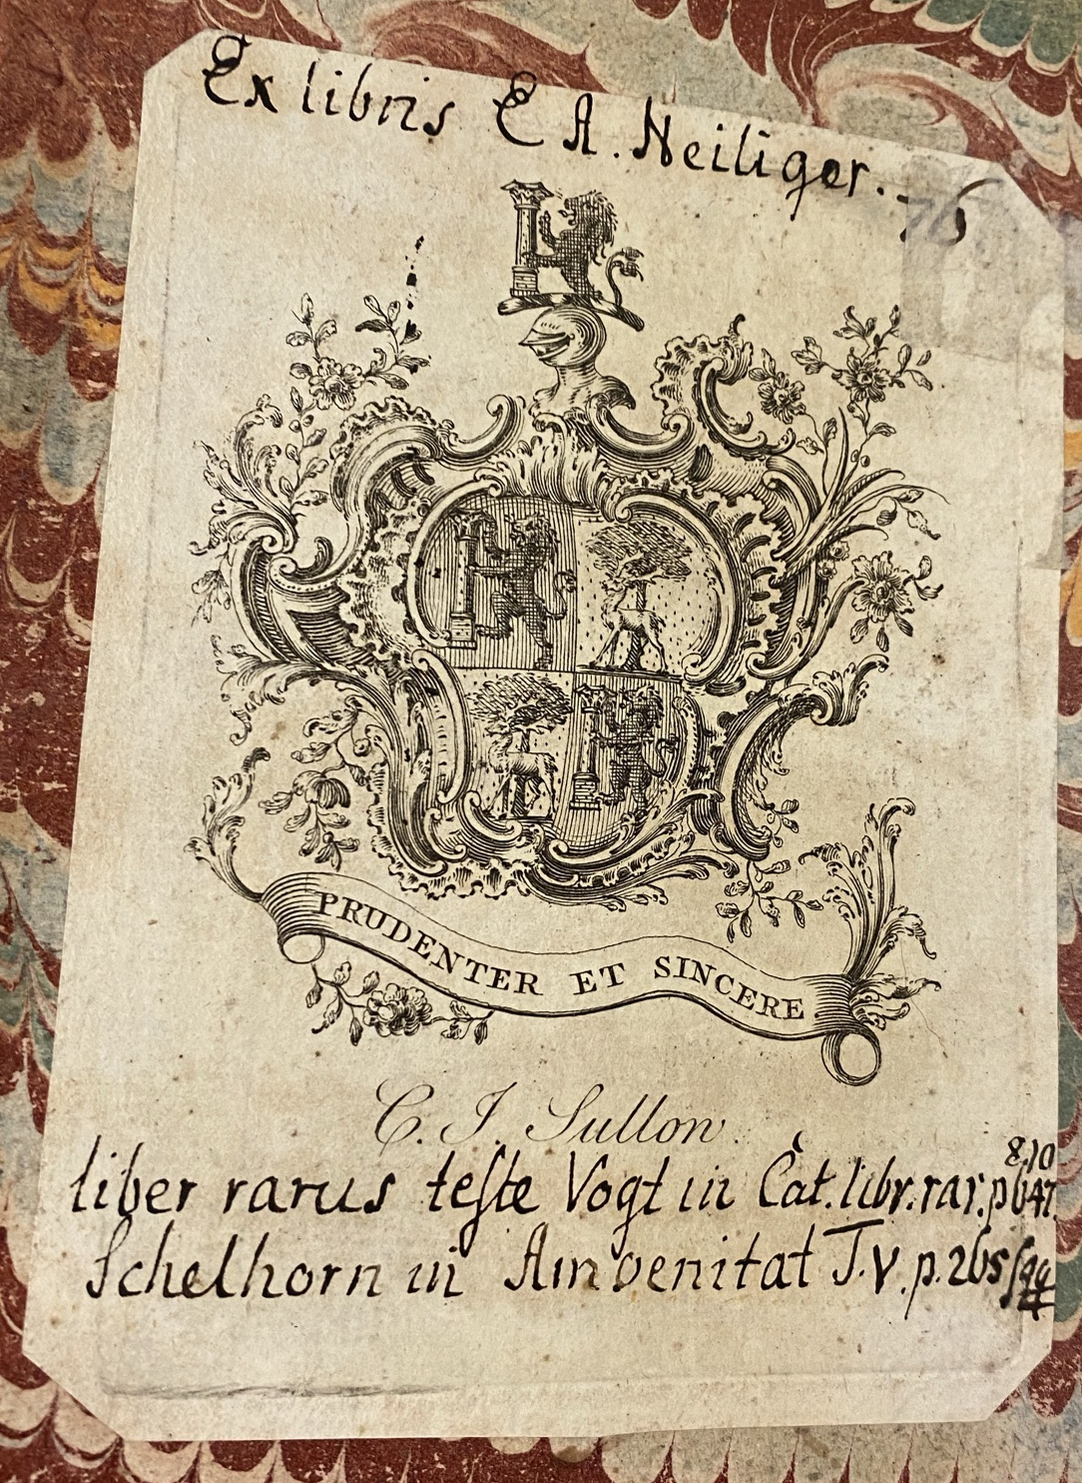 Armorial bookplate of C.J. Sullow with ex-libris and notes of E.A. Heiliger